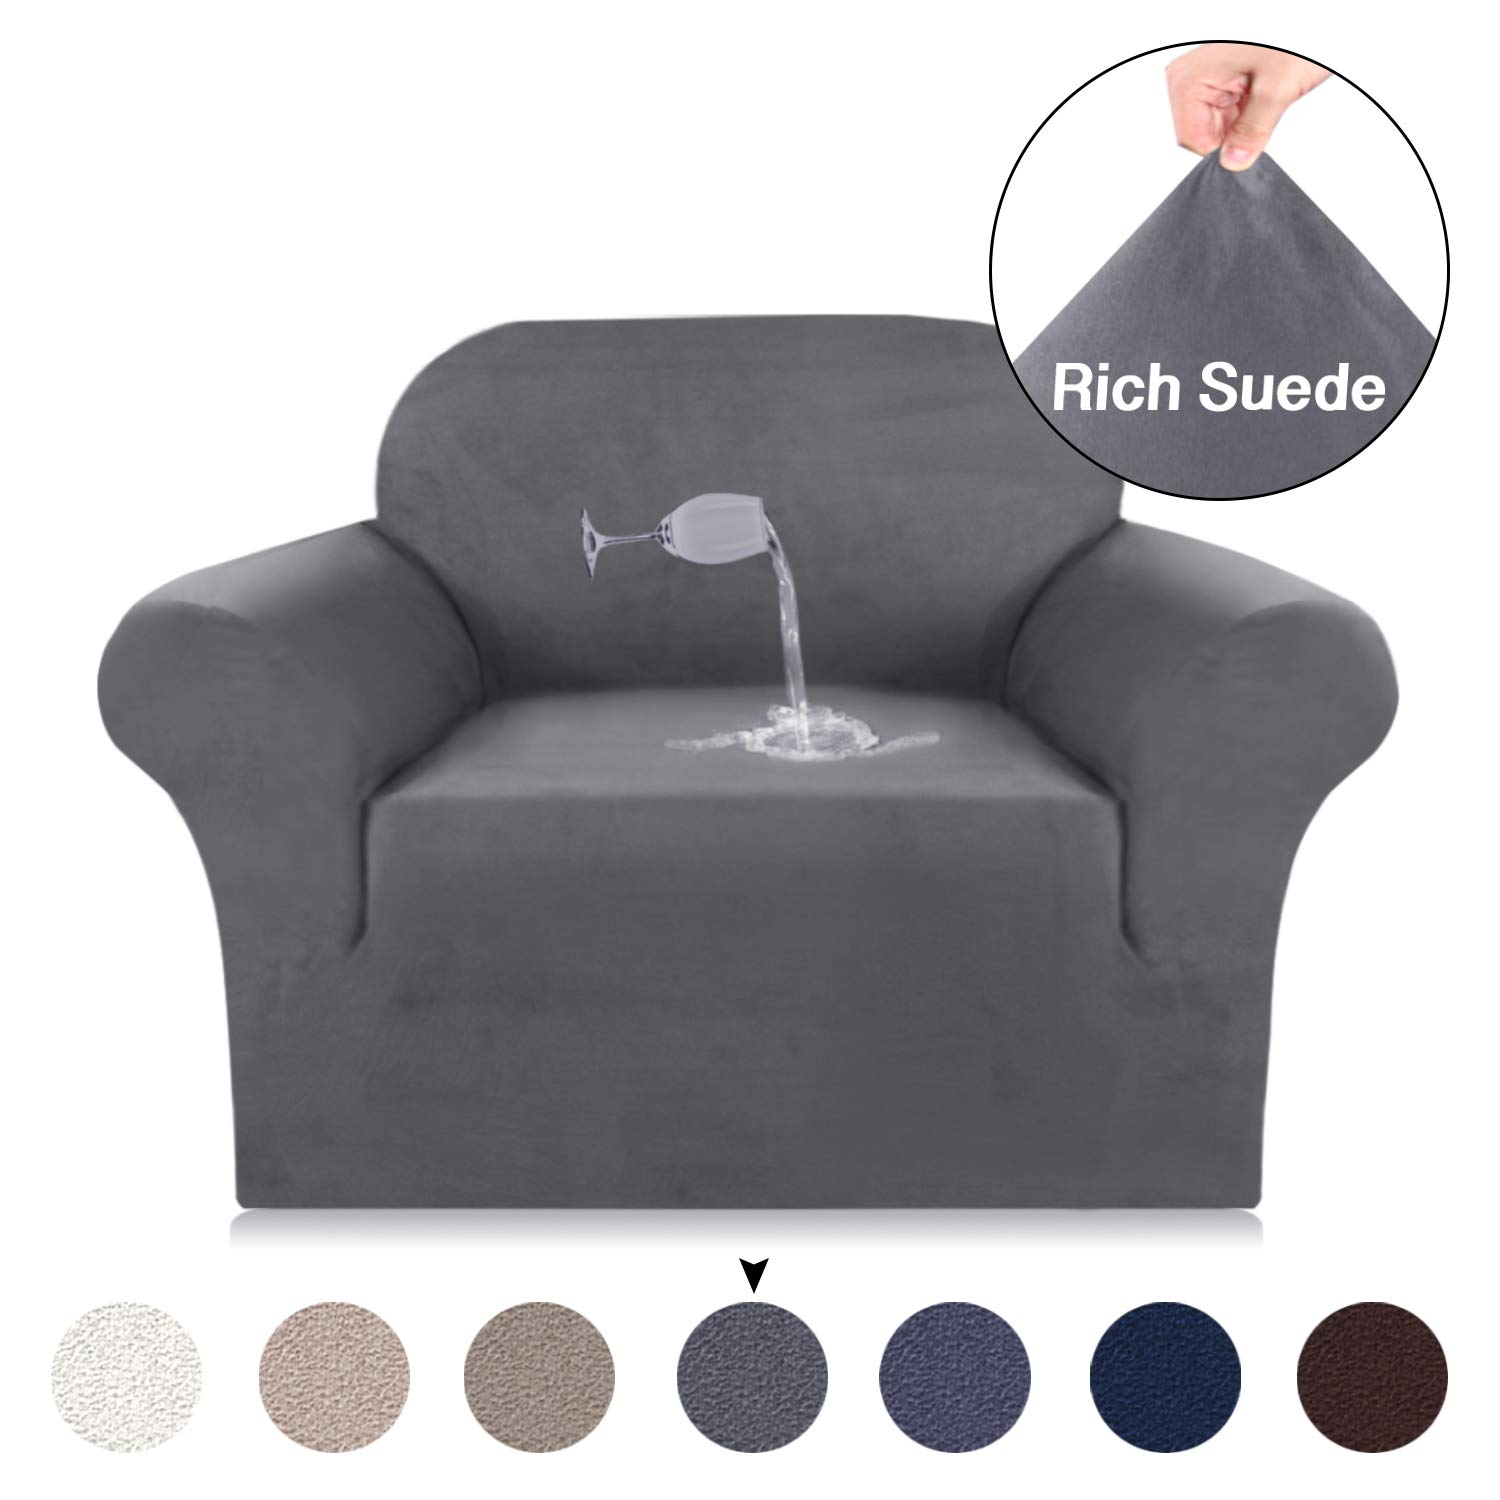 Turquoize Stretch Chair Slipcovers 1 Piece Velvet Plush Couch Cover for Chair, Water Repellent Stretch Luxury Furniture Covers, Strapless Stay in Place Washable Sofa Protector Cover (Chair, Grey)